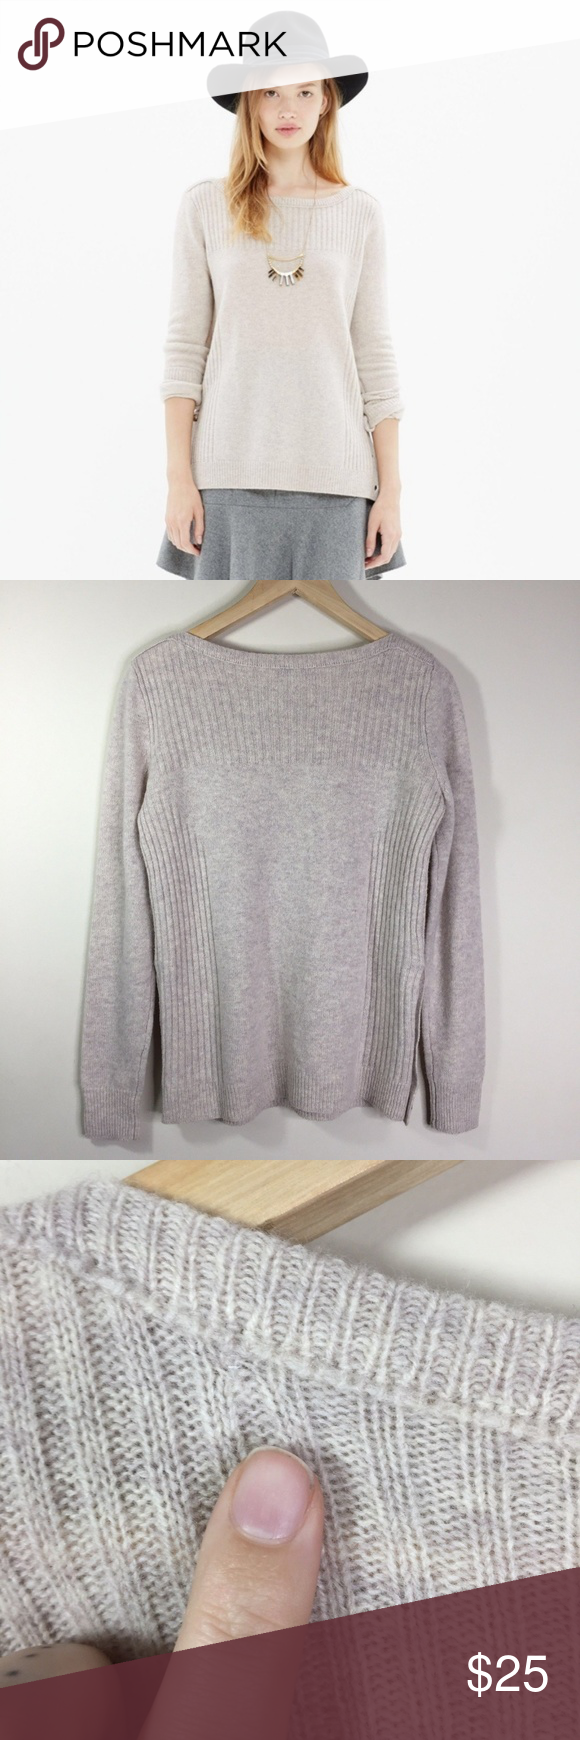 bbf9f85989c Madewell Small Oatmeal Pull Over Sweater I Madewell Small Oatmeal Pull Over  Long Sleeve Side Button